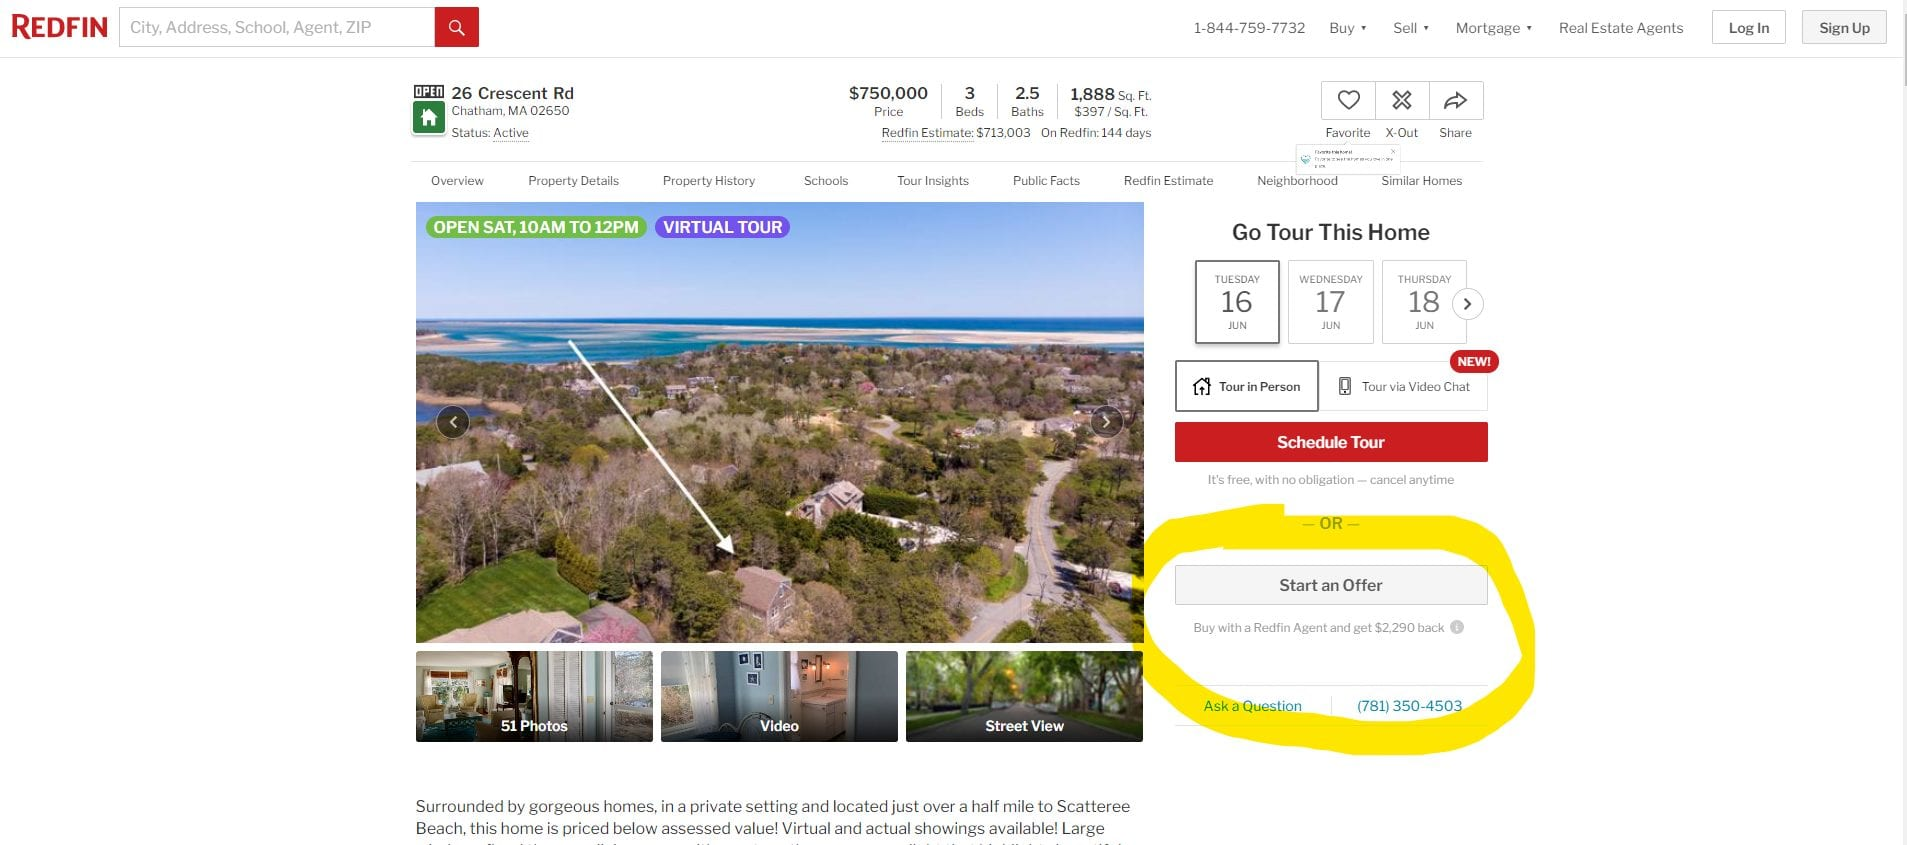 Redfin partner program featuring a screenshot of a Chatham, MA property for sale